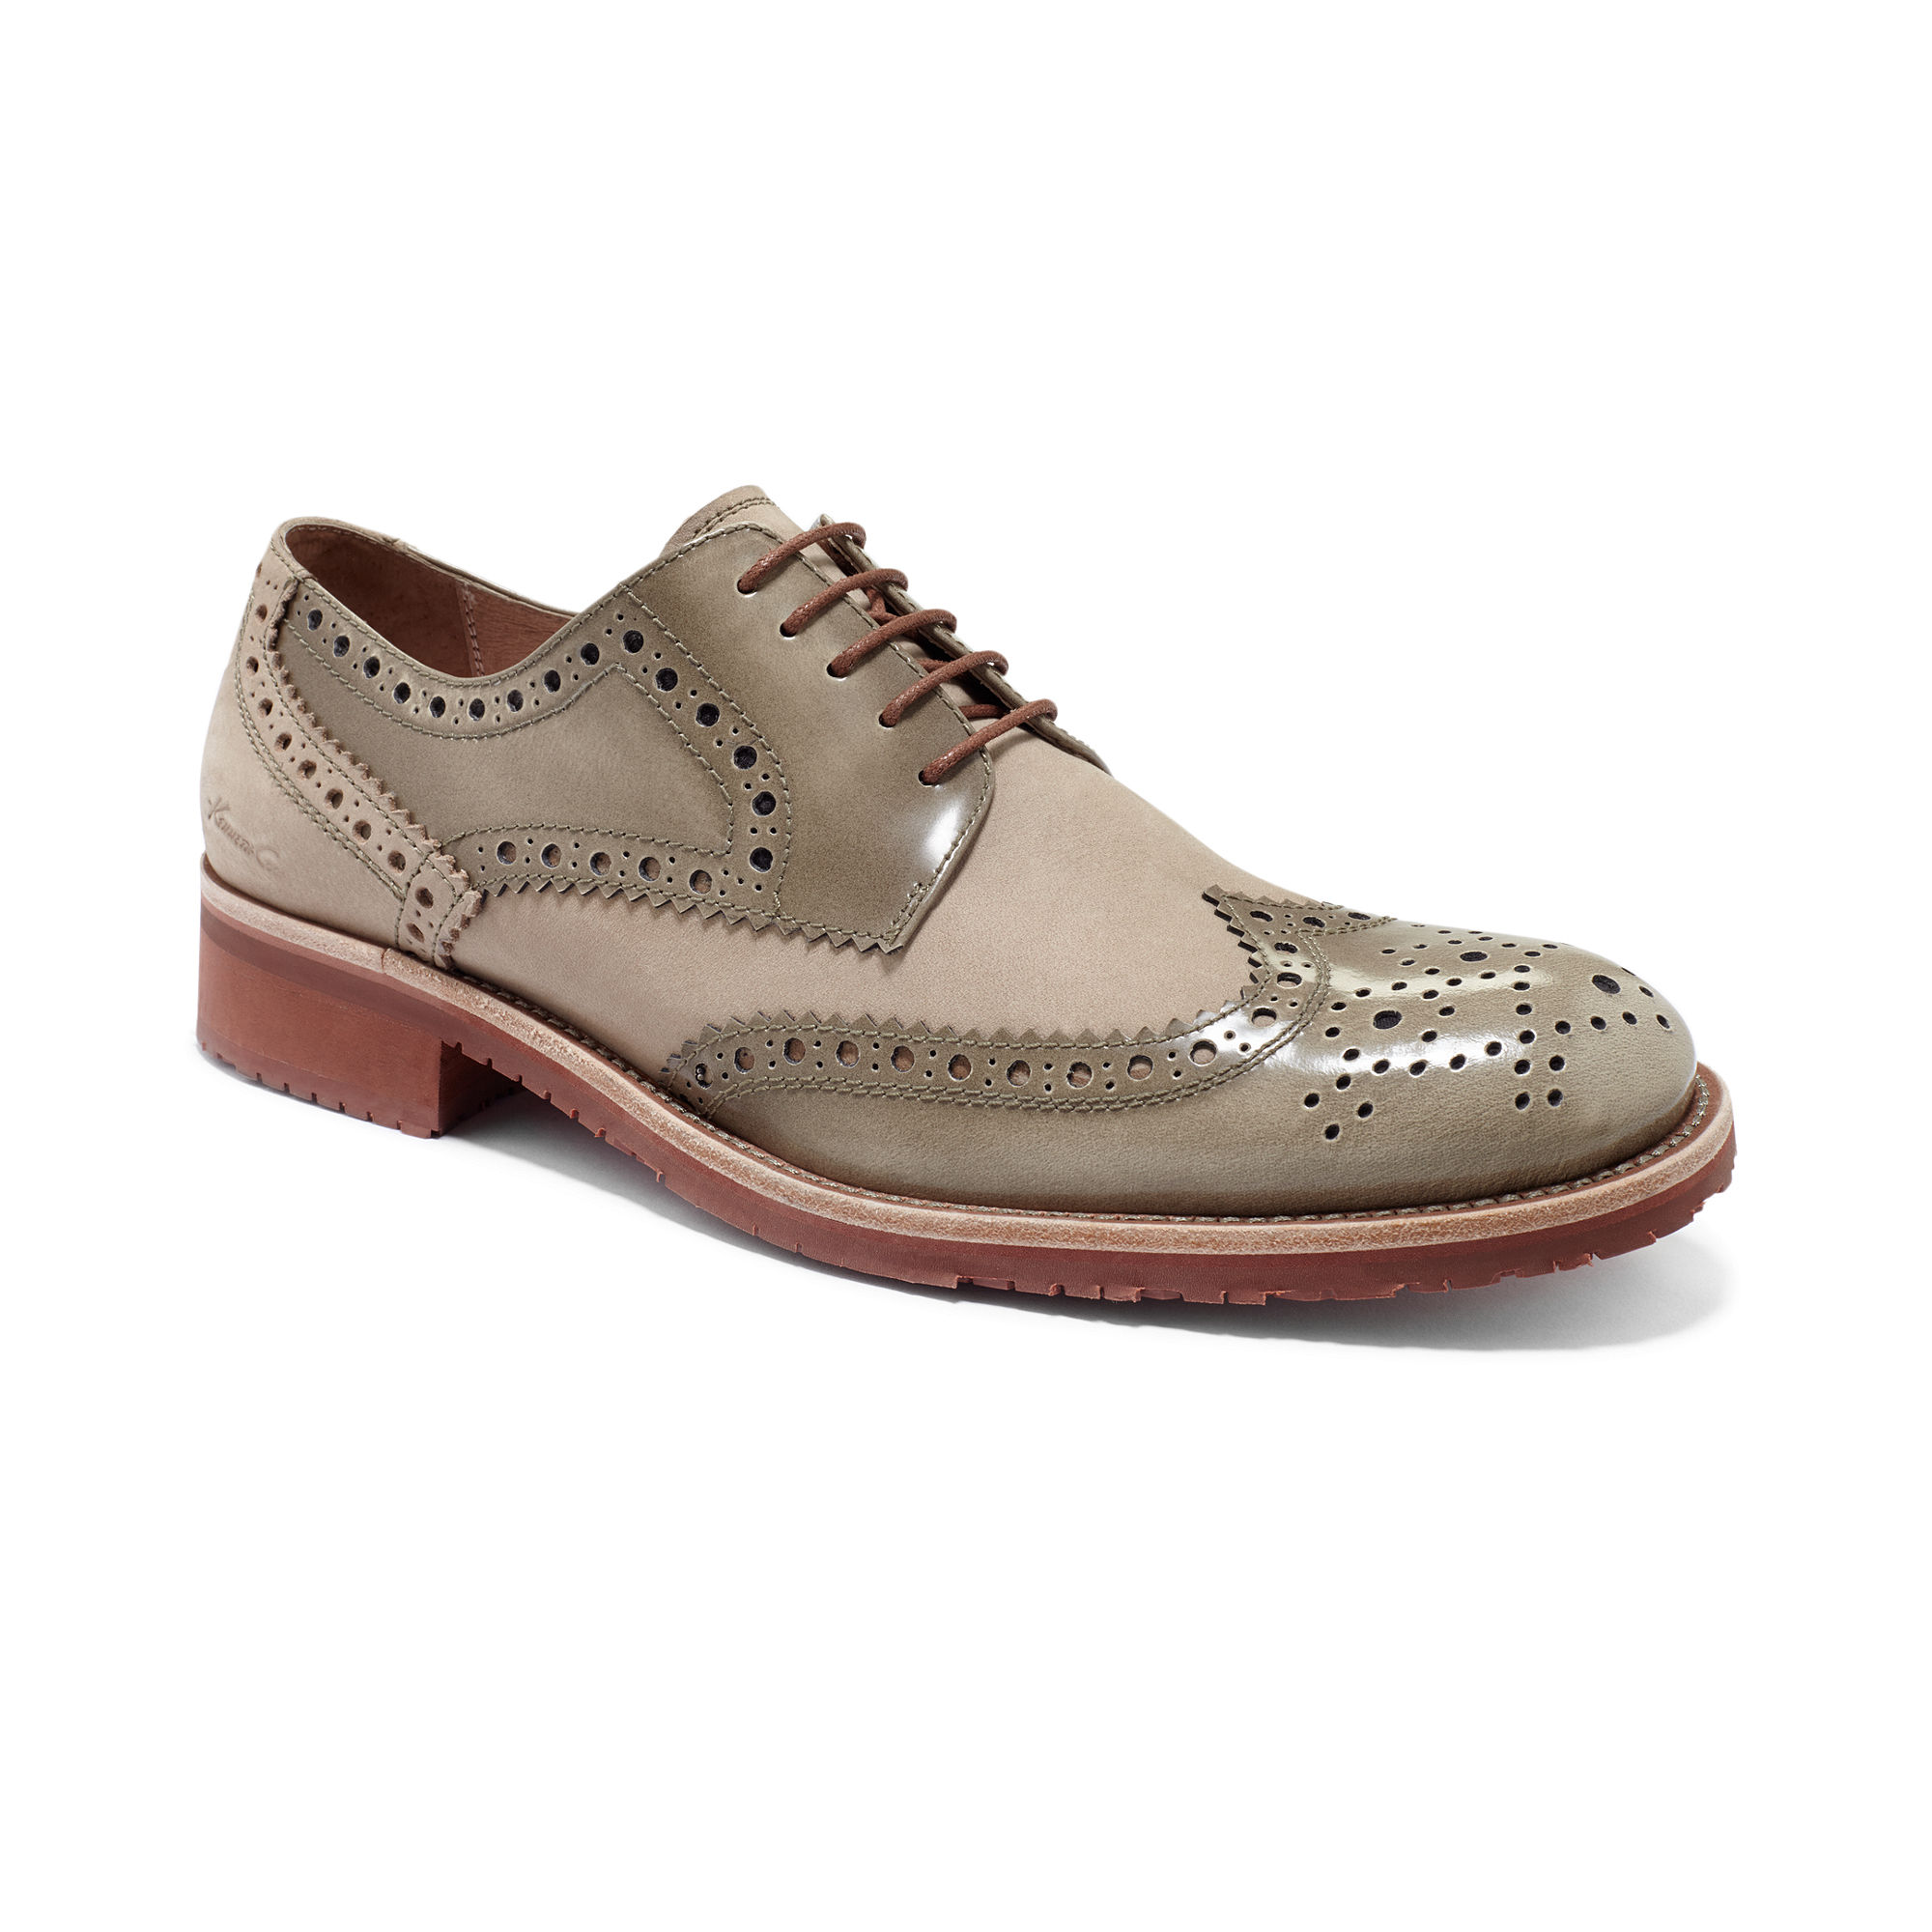 Kenneth Cole Shoes Sale